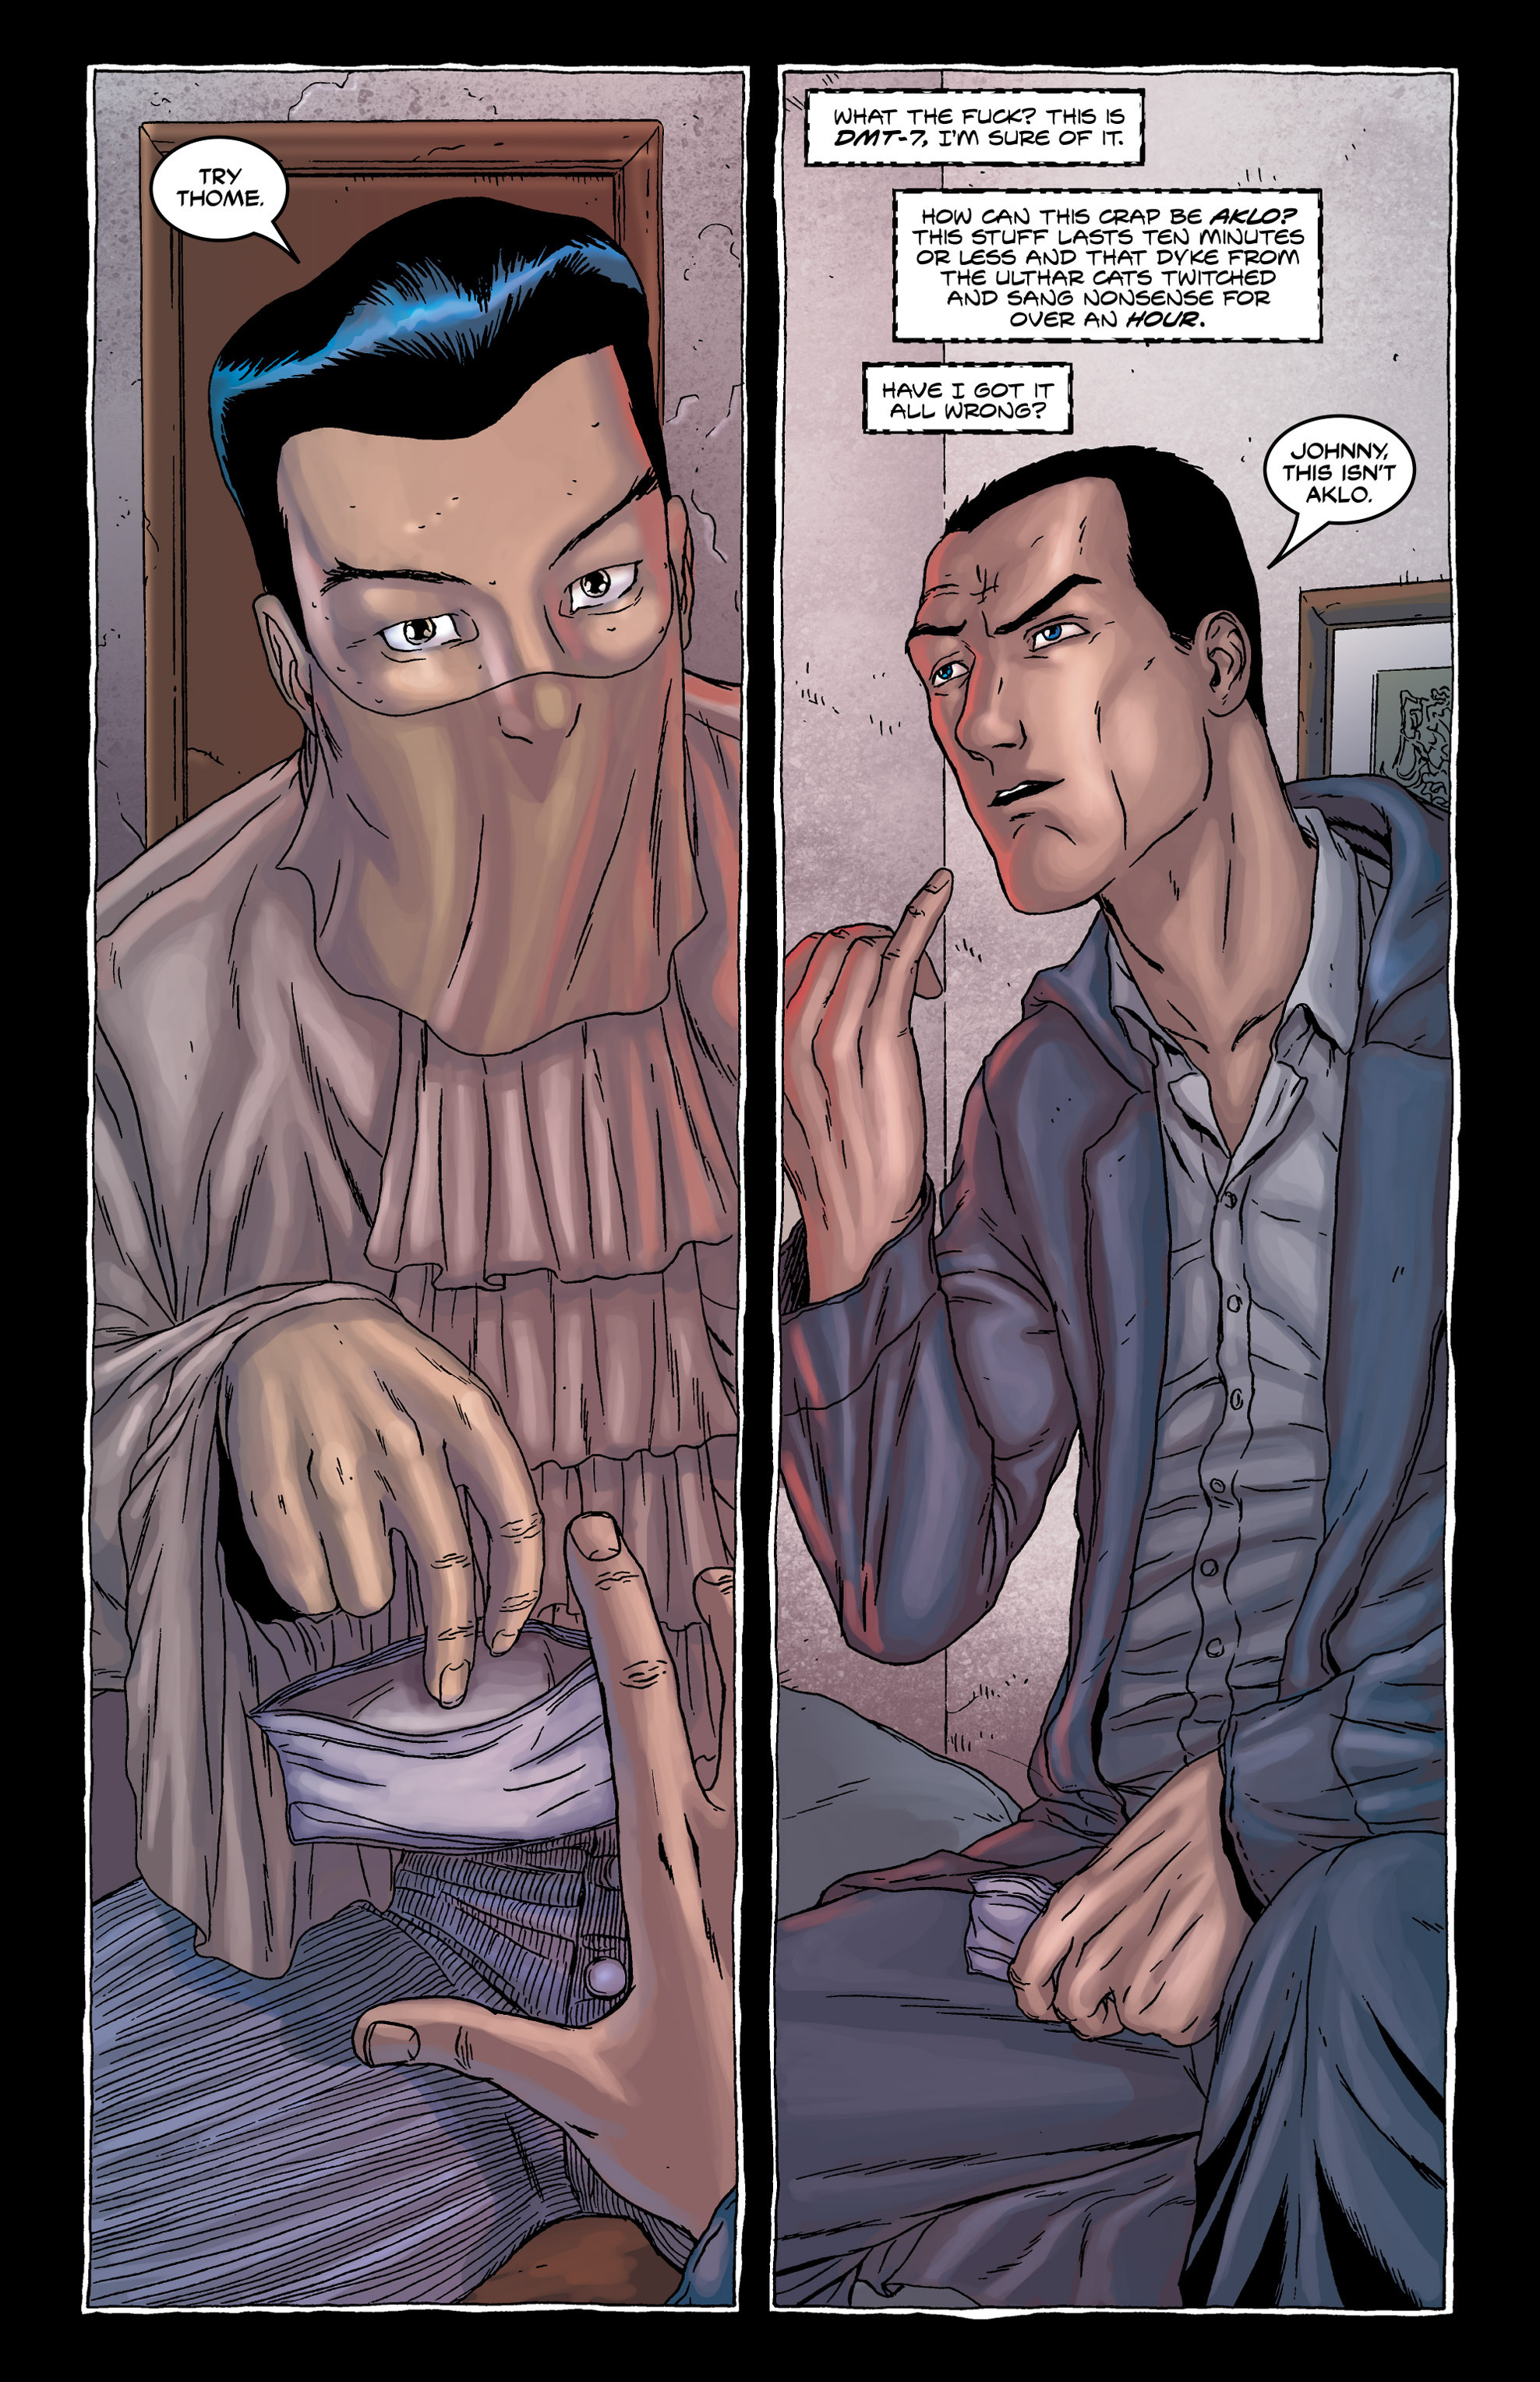 Read online Alan Moore's The Courtyard comic -  Issue # TPB - 39